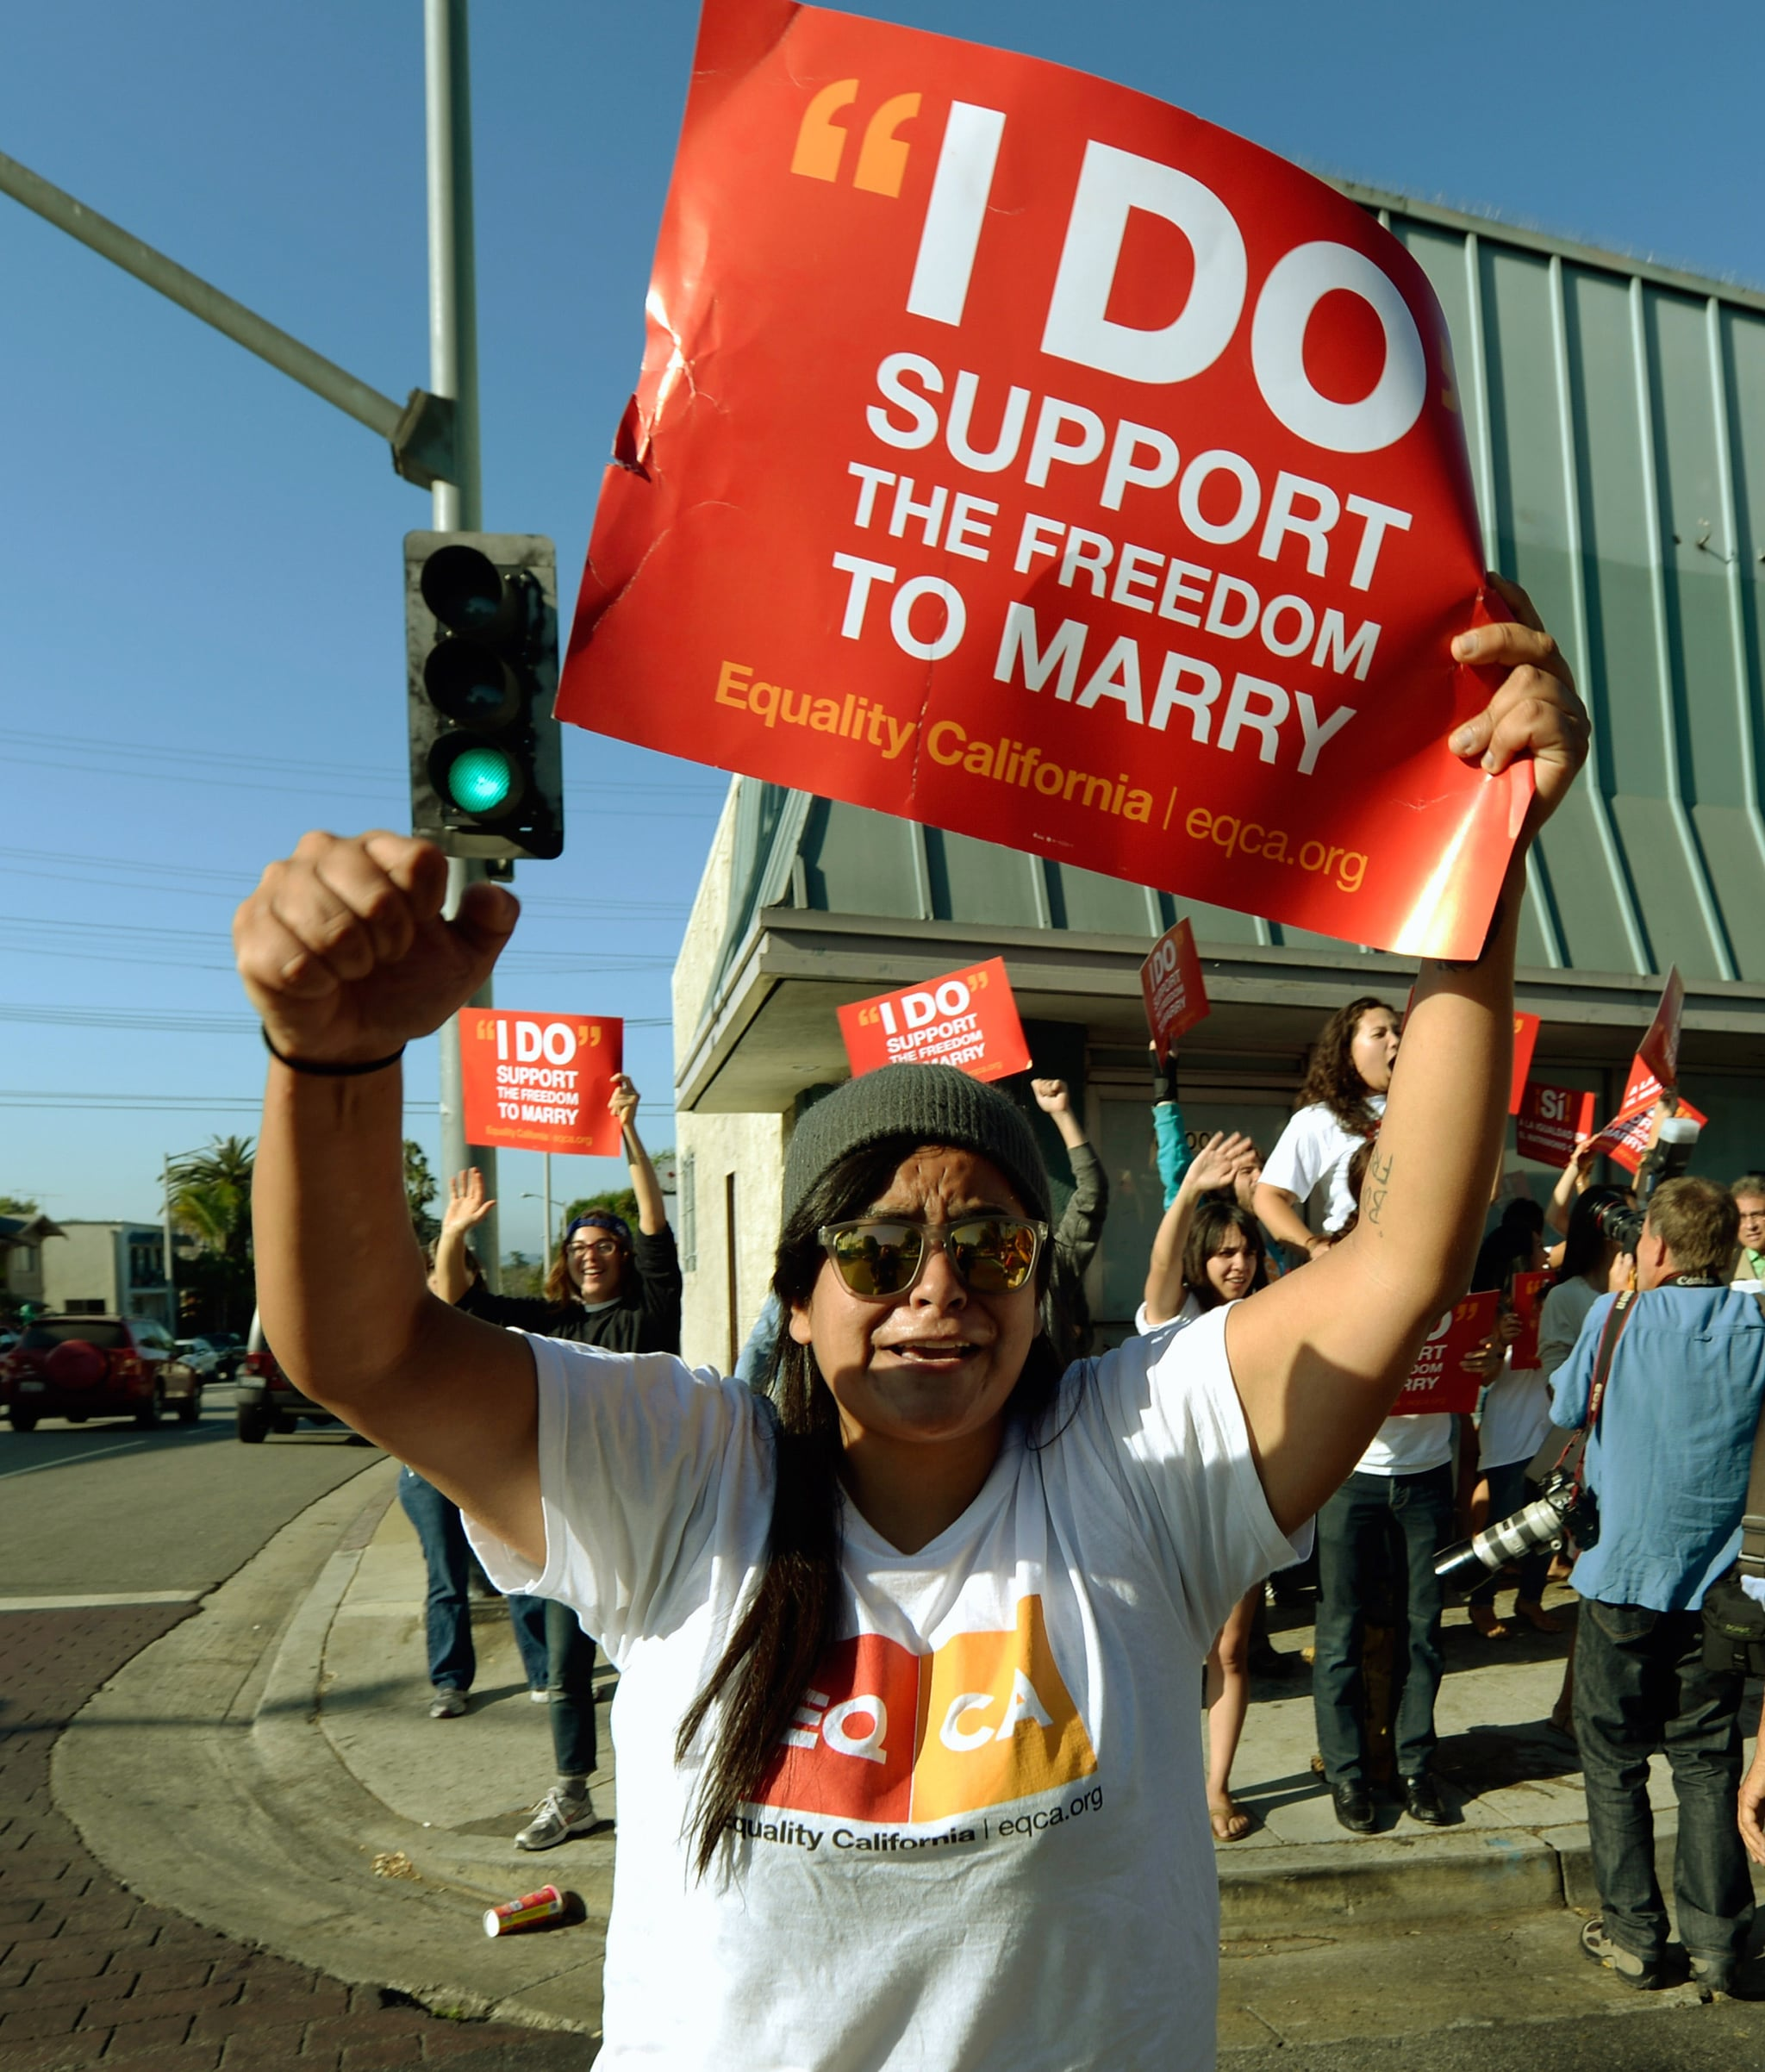 LA gay rights activists cheered in the streets upon hearing the high court's rulings.